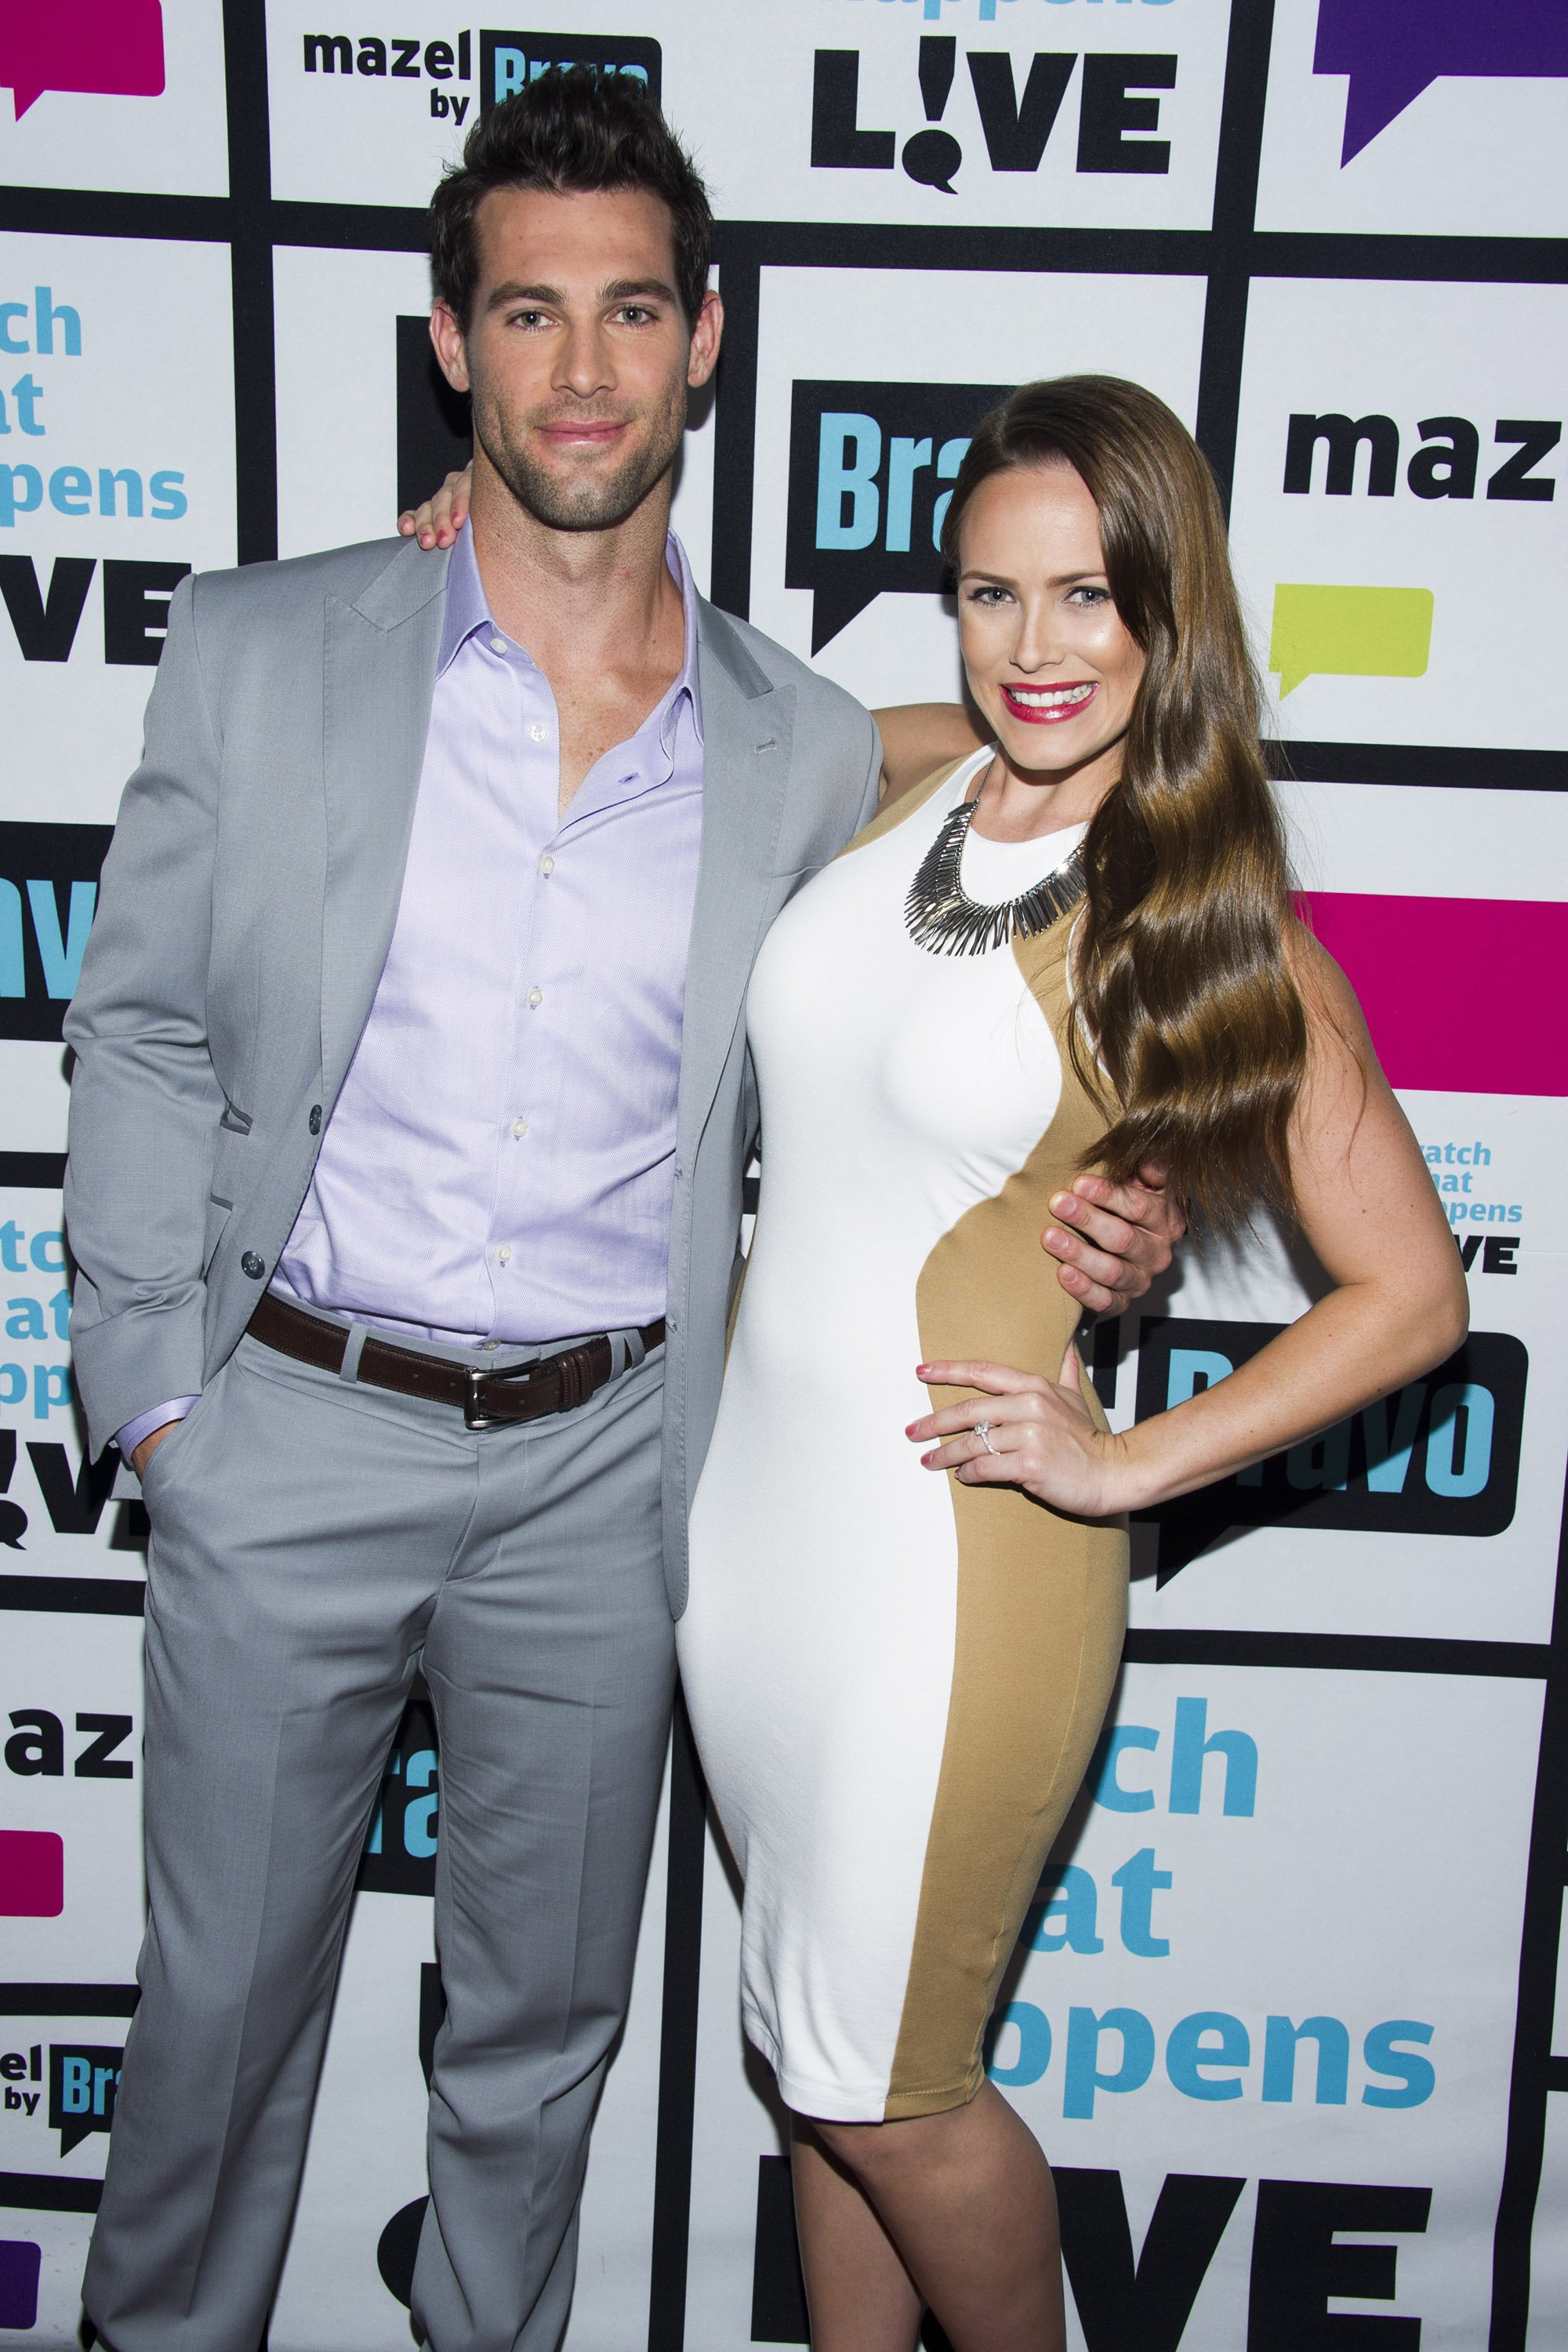 """Shaneand Kara Keough on """"Watch What Happens Live"""" on June 25, 2013   Photo: Charles Sykes/Bravo/NBCU Photo Bank/Getty Images"""